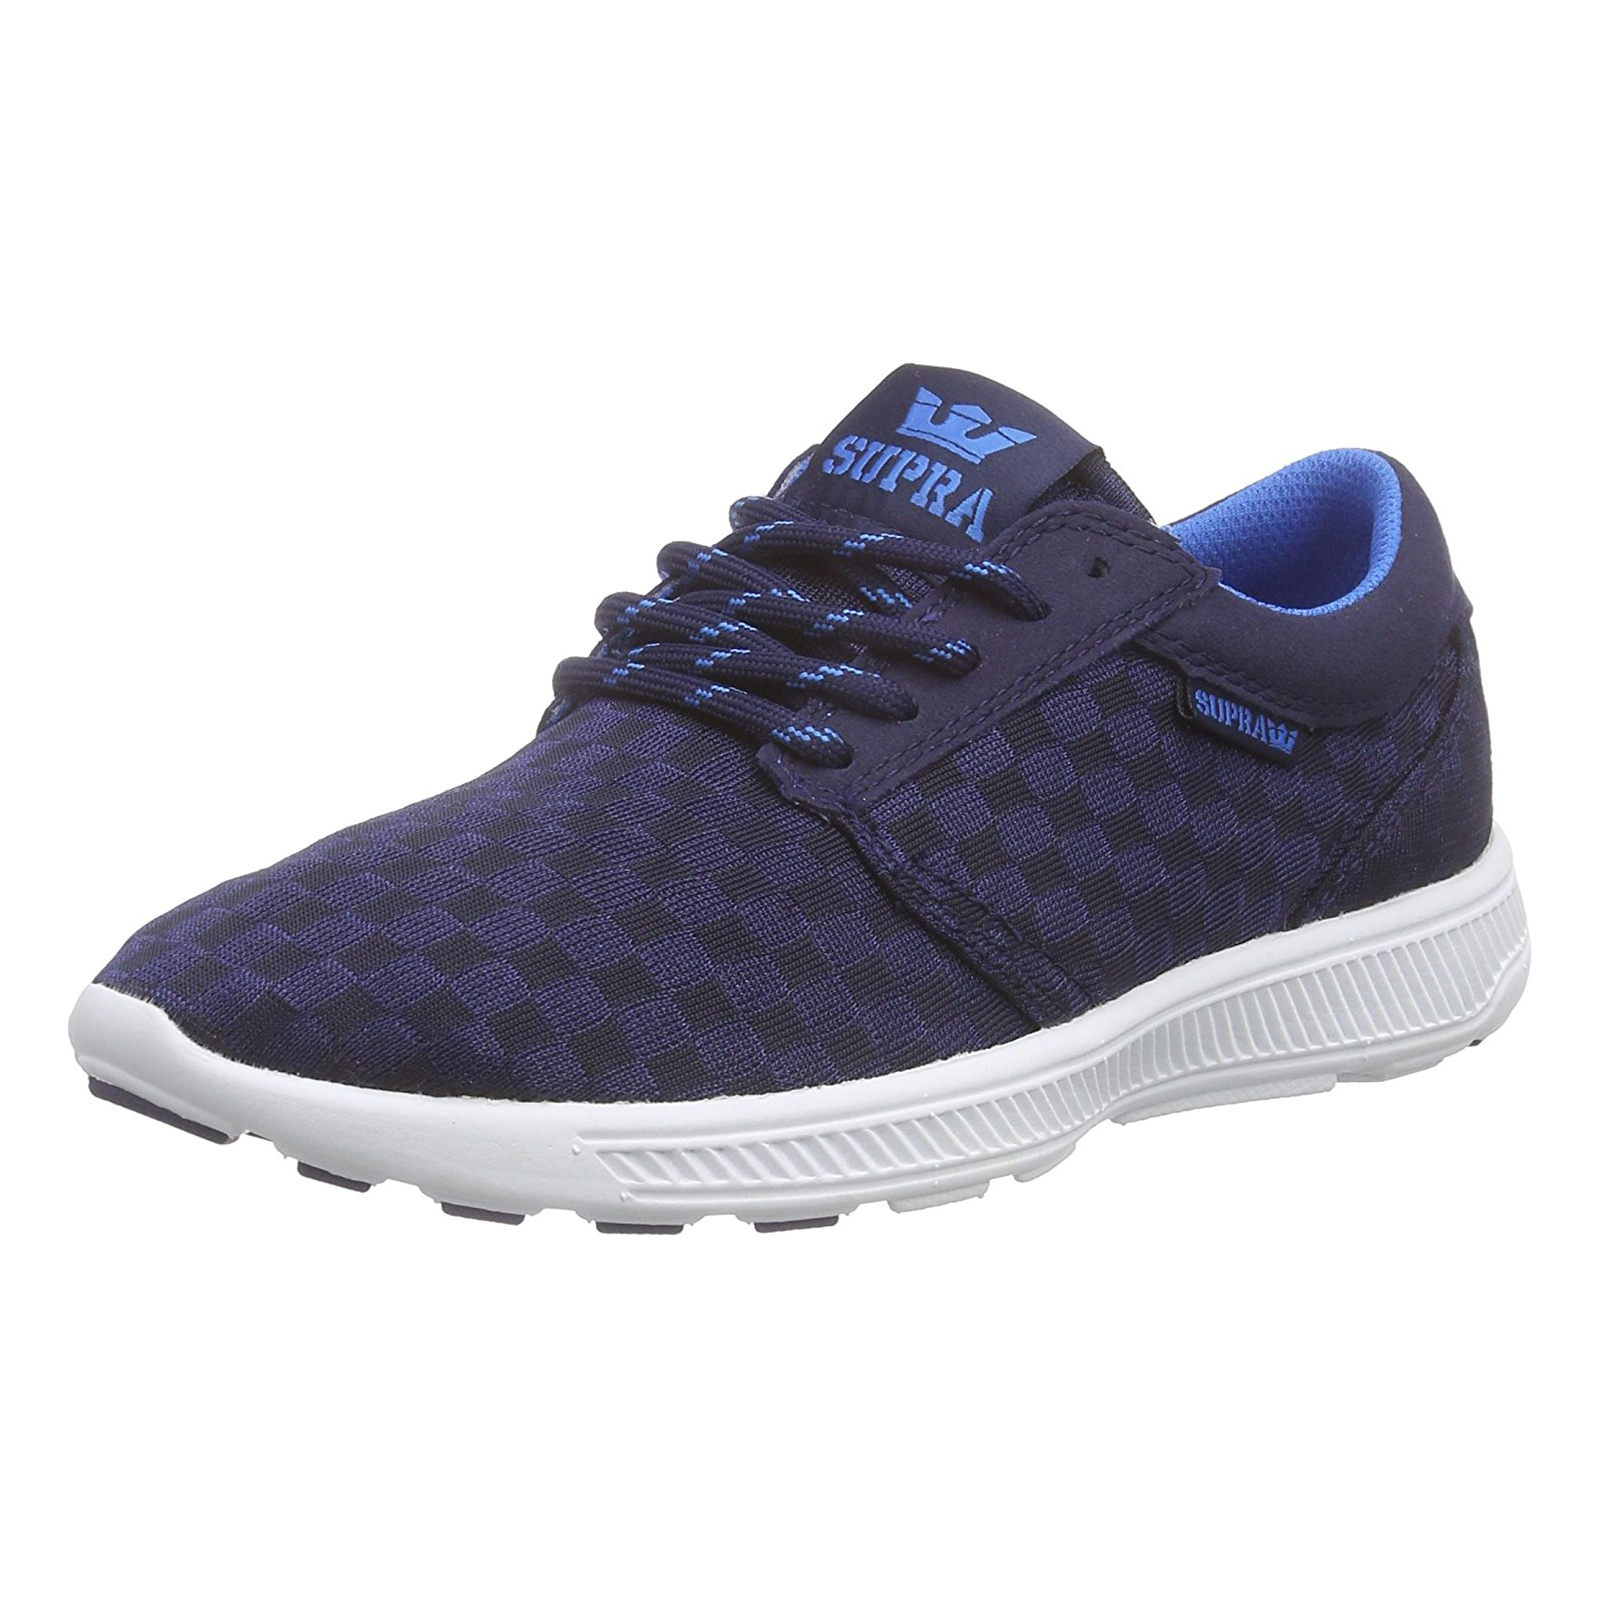 9ff192d1d121 SUPRA Men s Hammer Run Running Shoe 10 for sale online